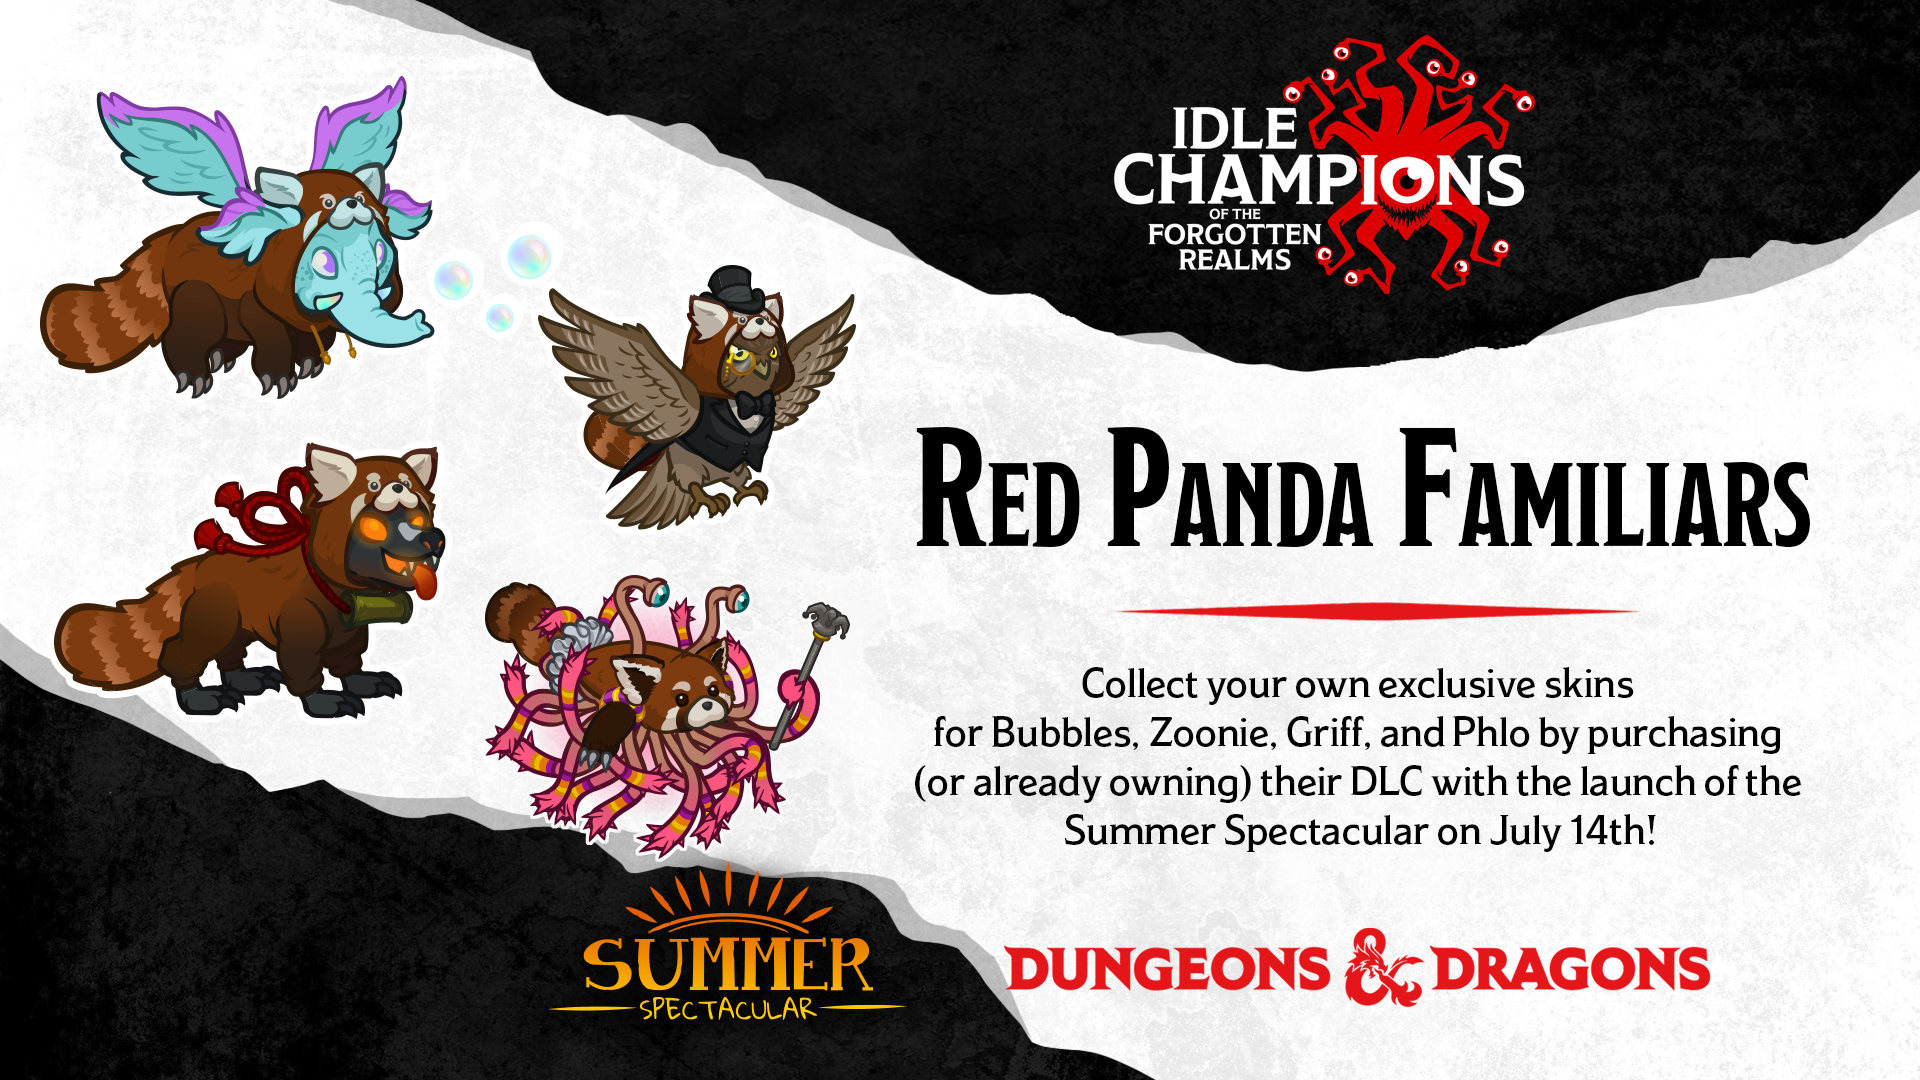 Dungeons & Dragons Summer Spectacular Red Panda Familiars